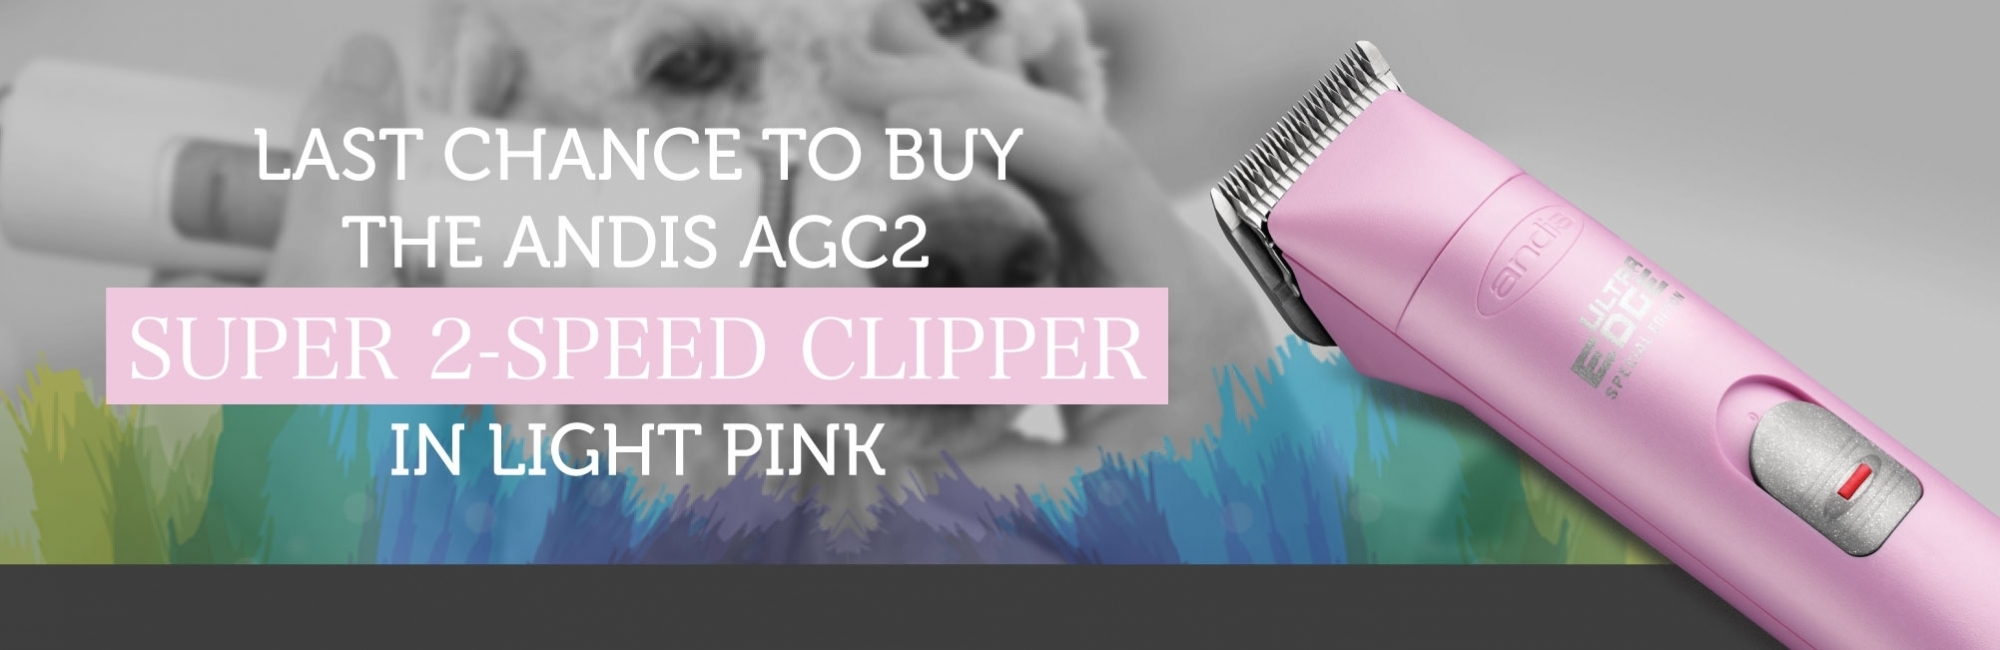 Last Chance To Buy The Andis AGC2 Super 2-Speed Clipper In Light Pink